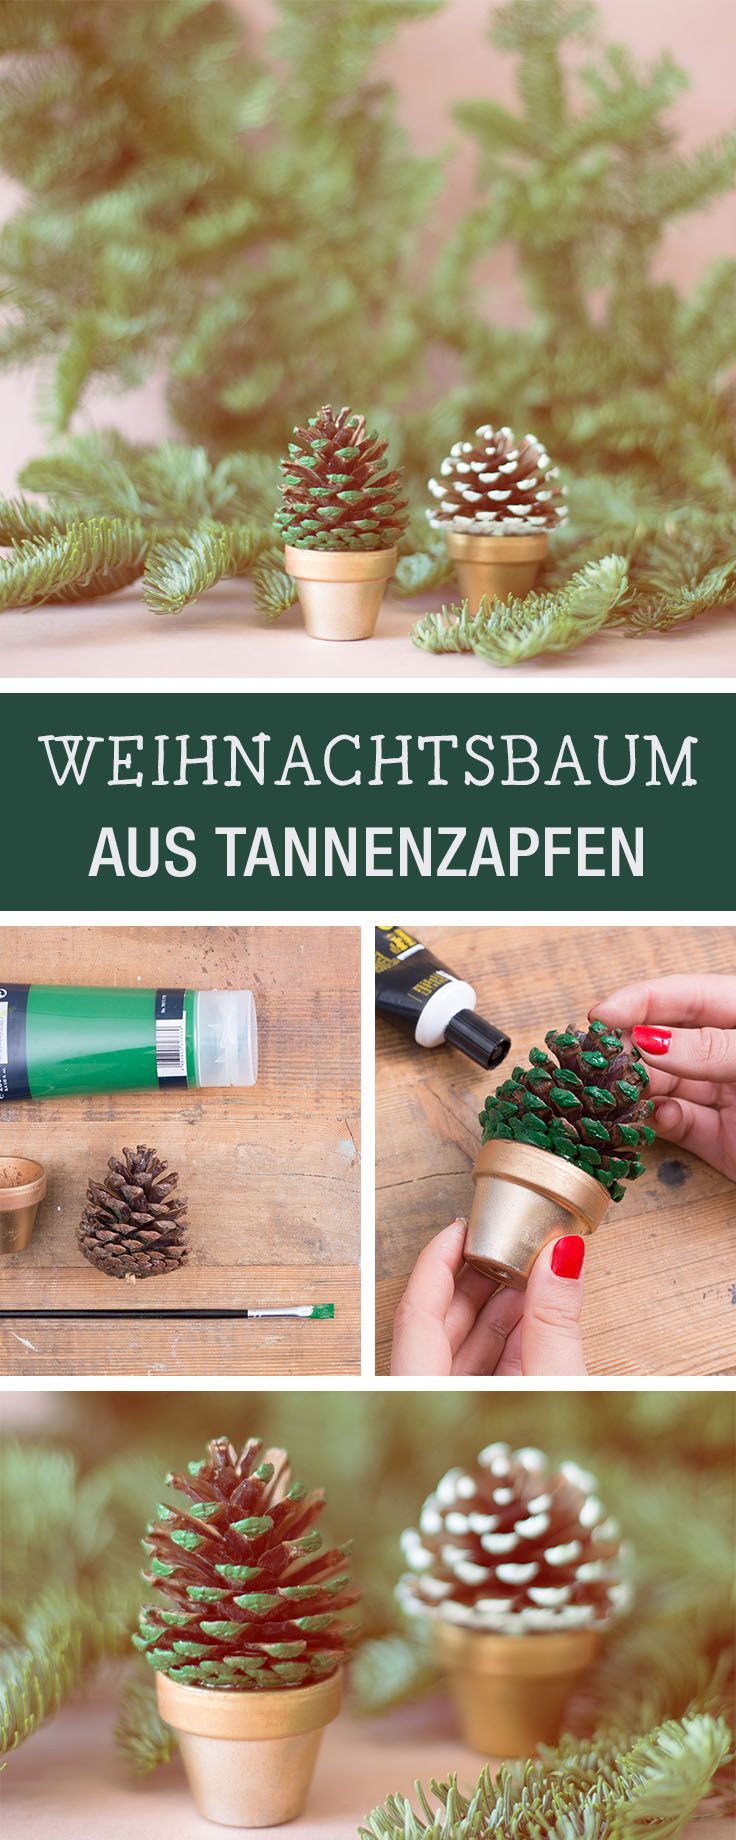 Einfache DIY Idee für Weihnachten und den Advent: Weihnachtsbäume aus Tannenzäpfen selber machen / easy diy idea for christmas: craft christmas trees with pine cones via DaWanda.com